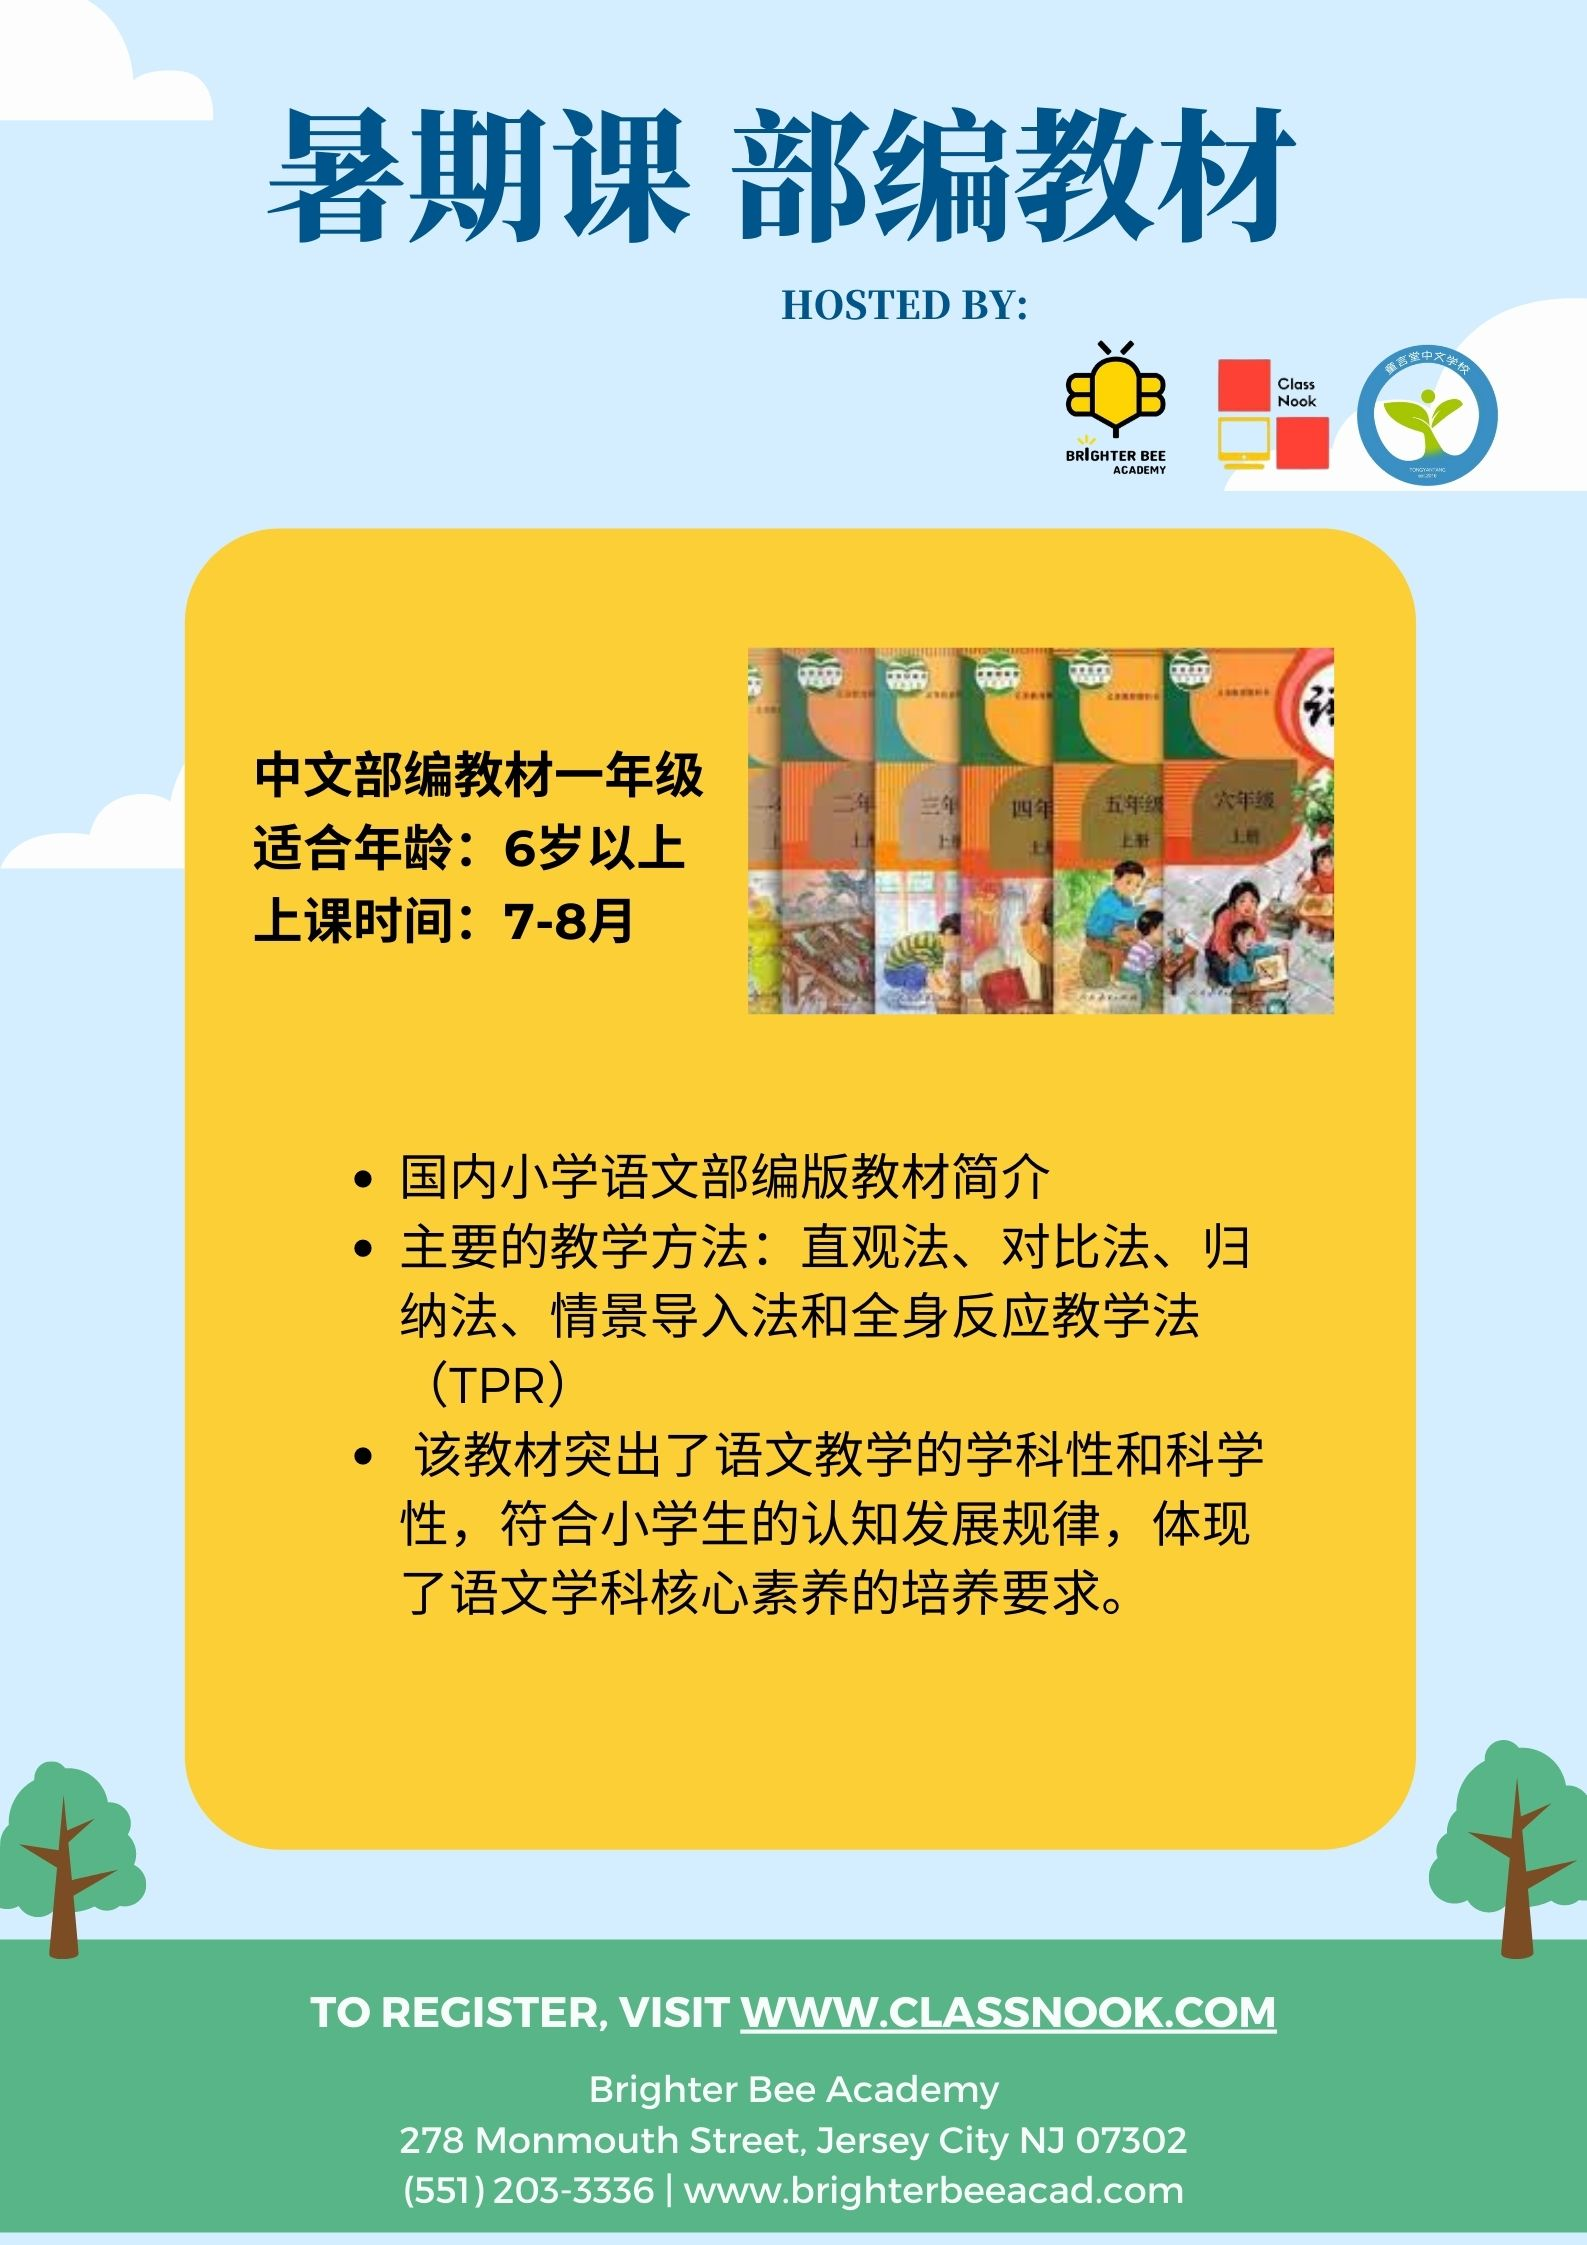 Copy of BB Course Posters 的複本 (6)